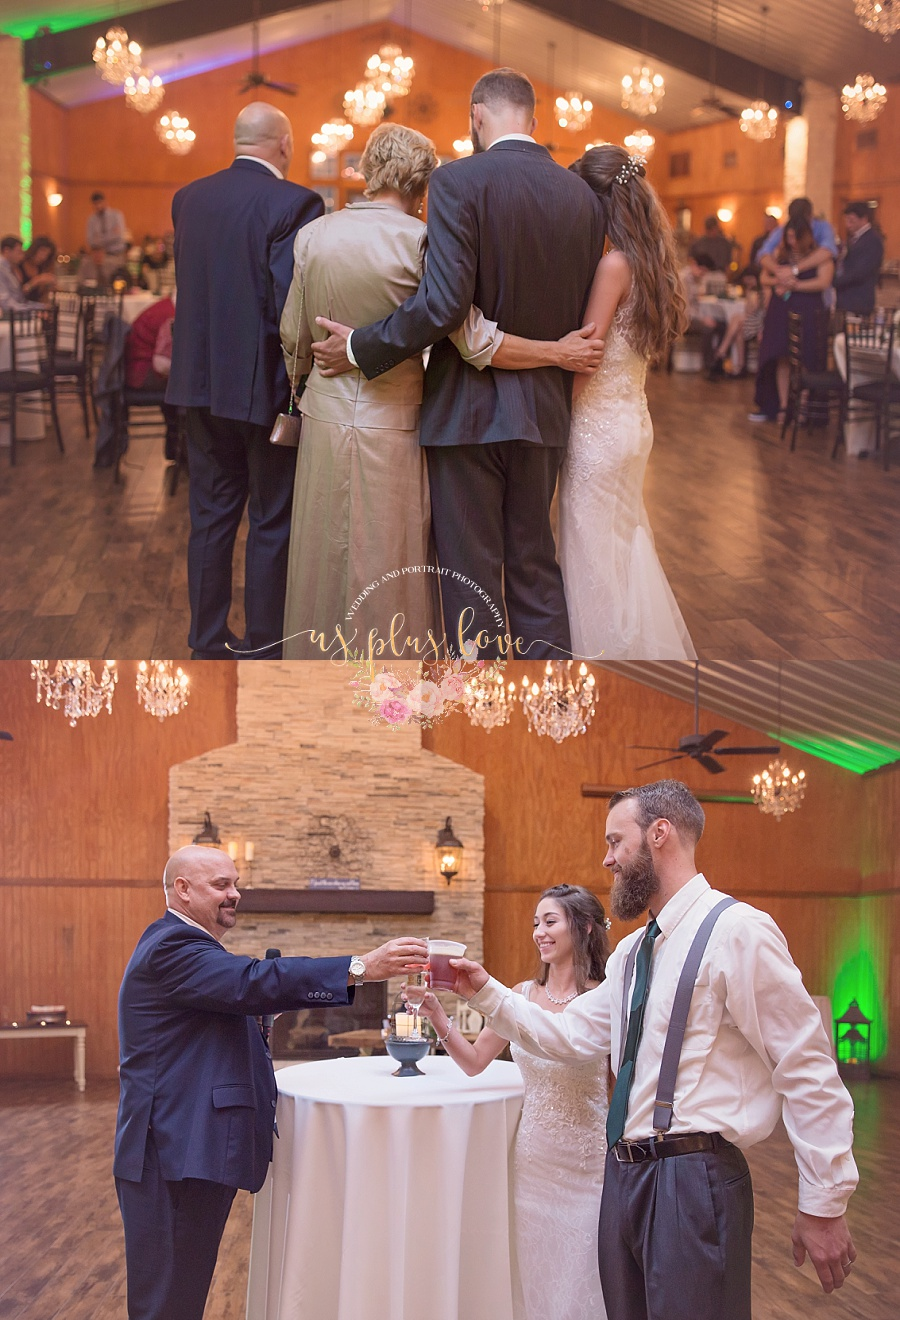 toasts-wedding-reception-father-bride-mother-groom-ashelynn-manor-reception.jpg